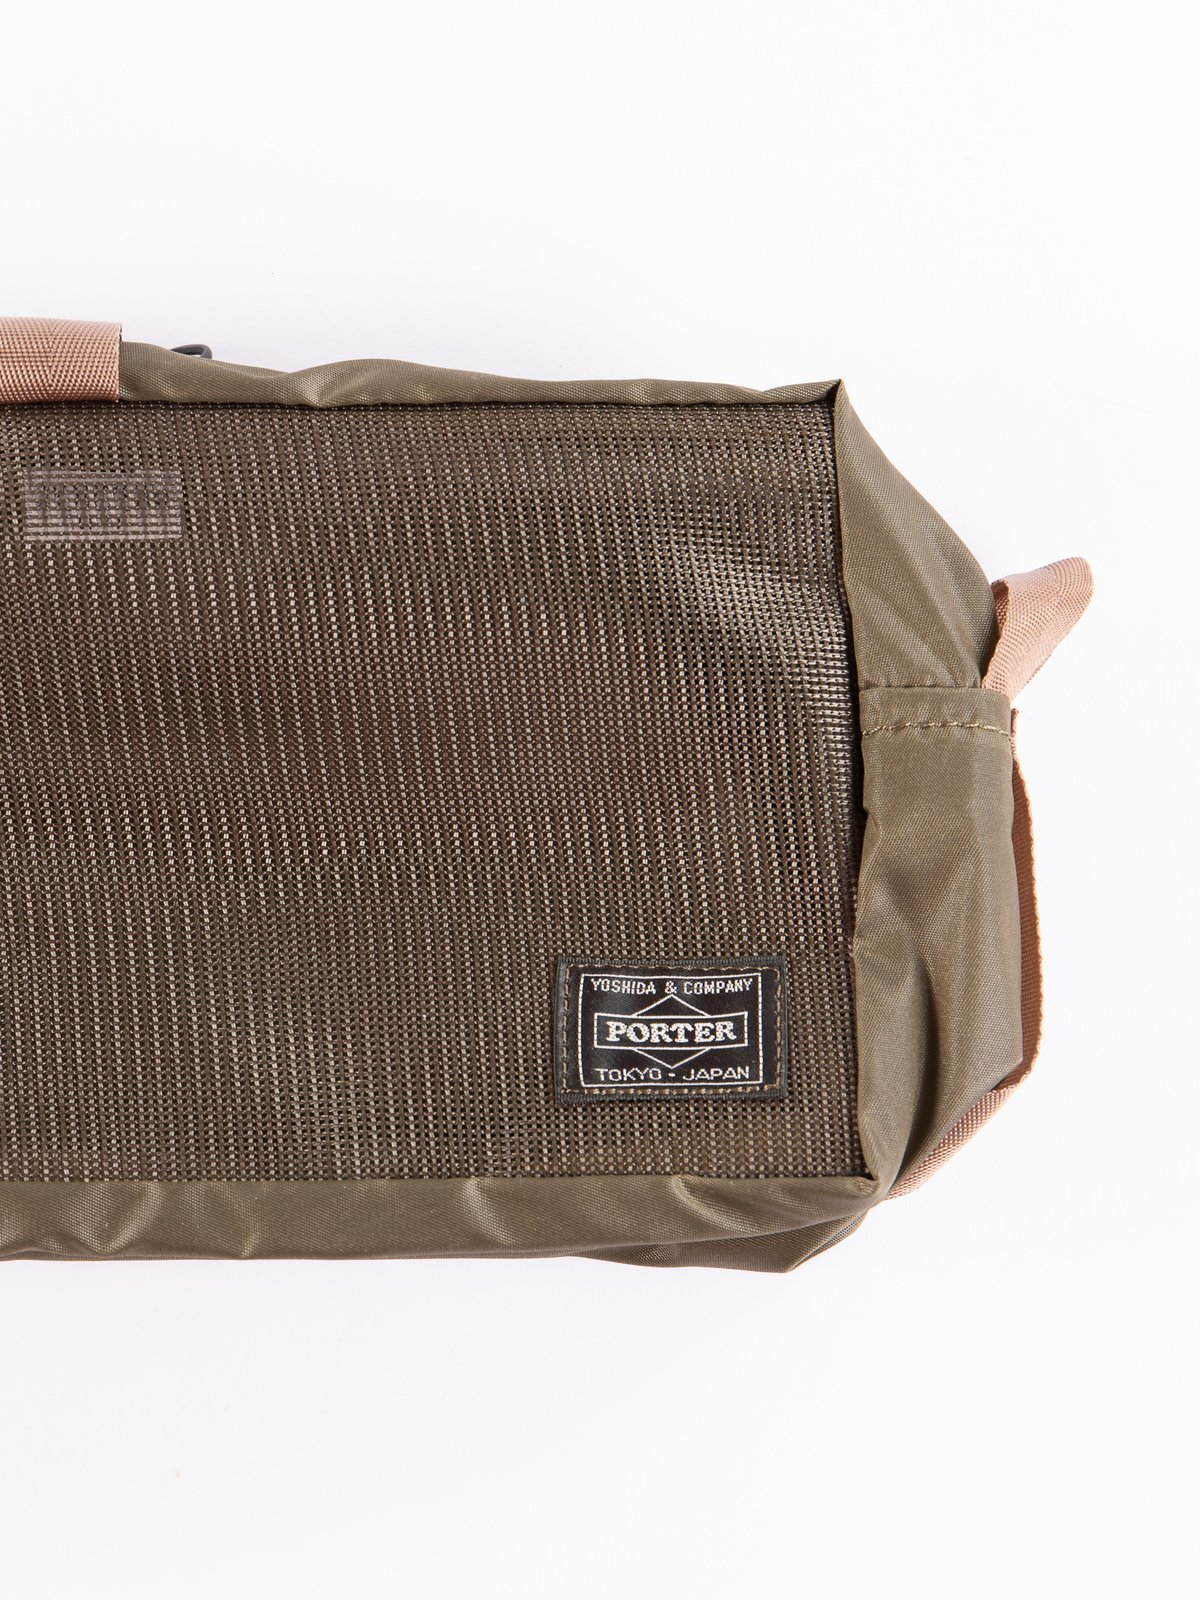 Olive Drab Snack Pack 09809 Pouch Medium - Image 2